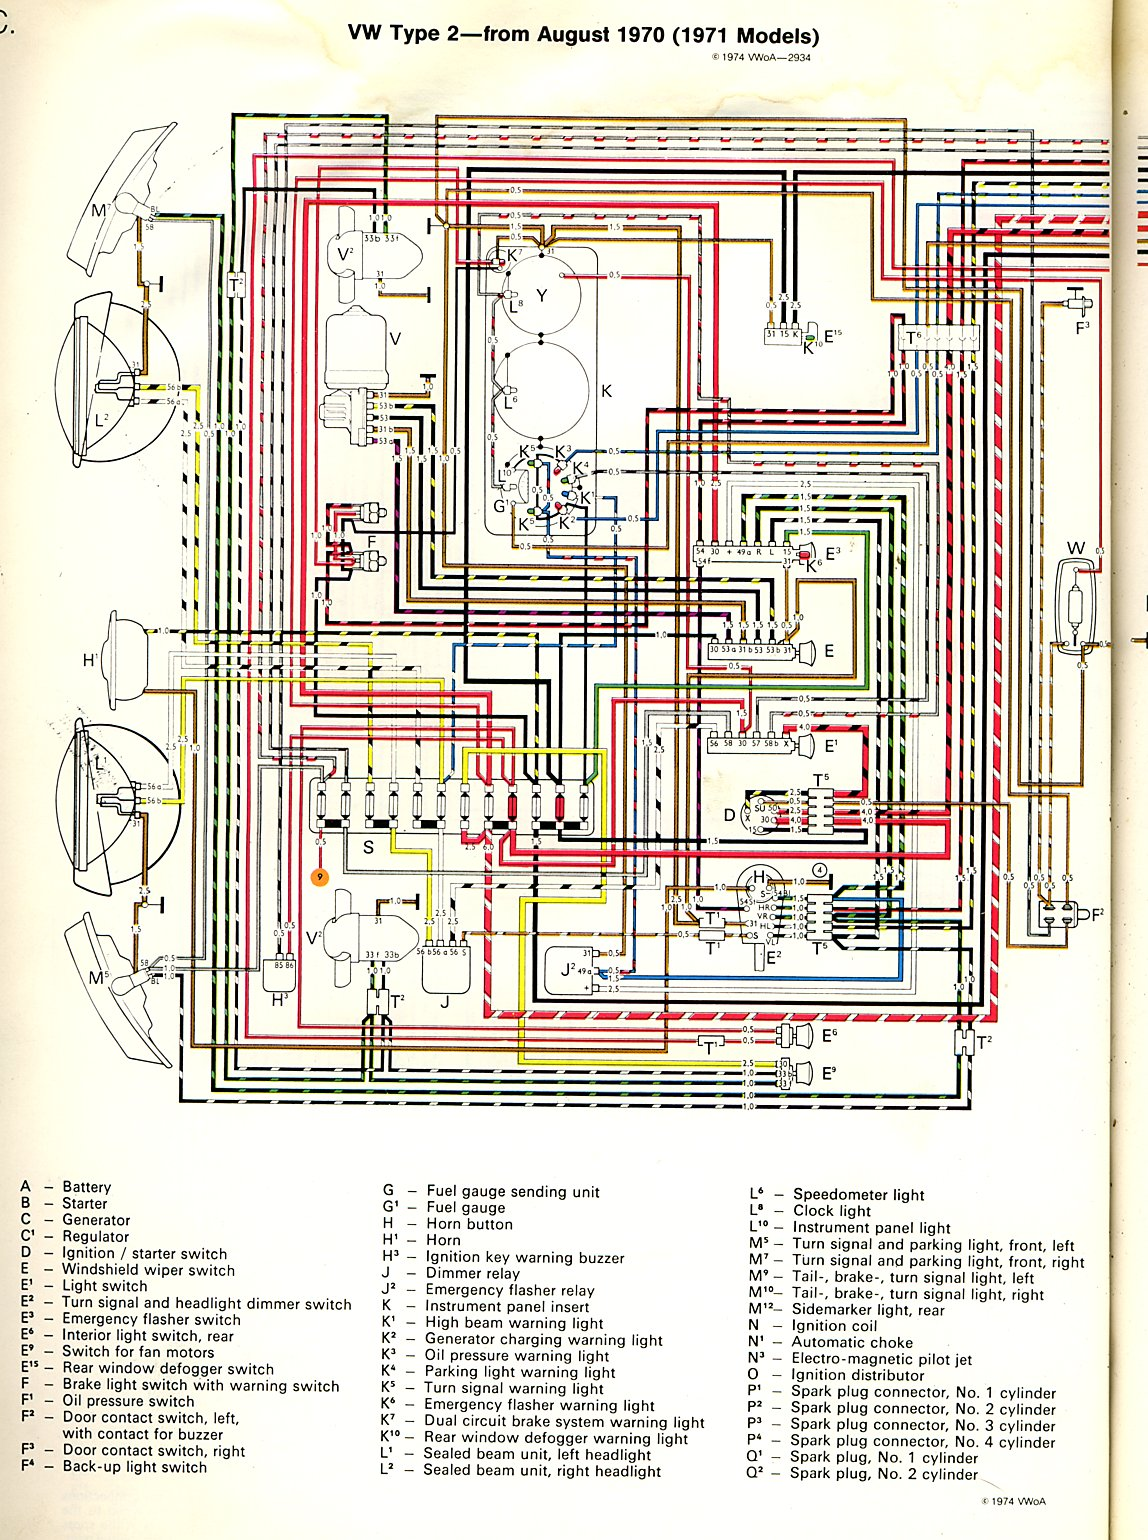 baybus_71a thesamba com type 2 wiring diagrams 1971 vw bus wiring diagram at gsmportal.co